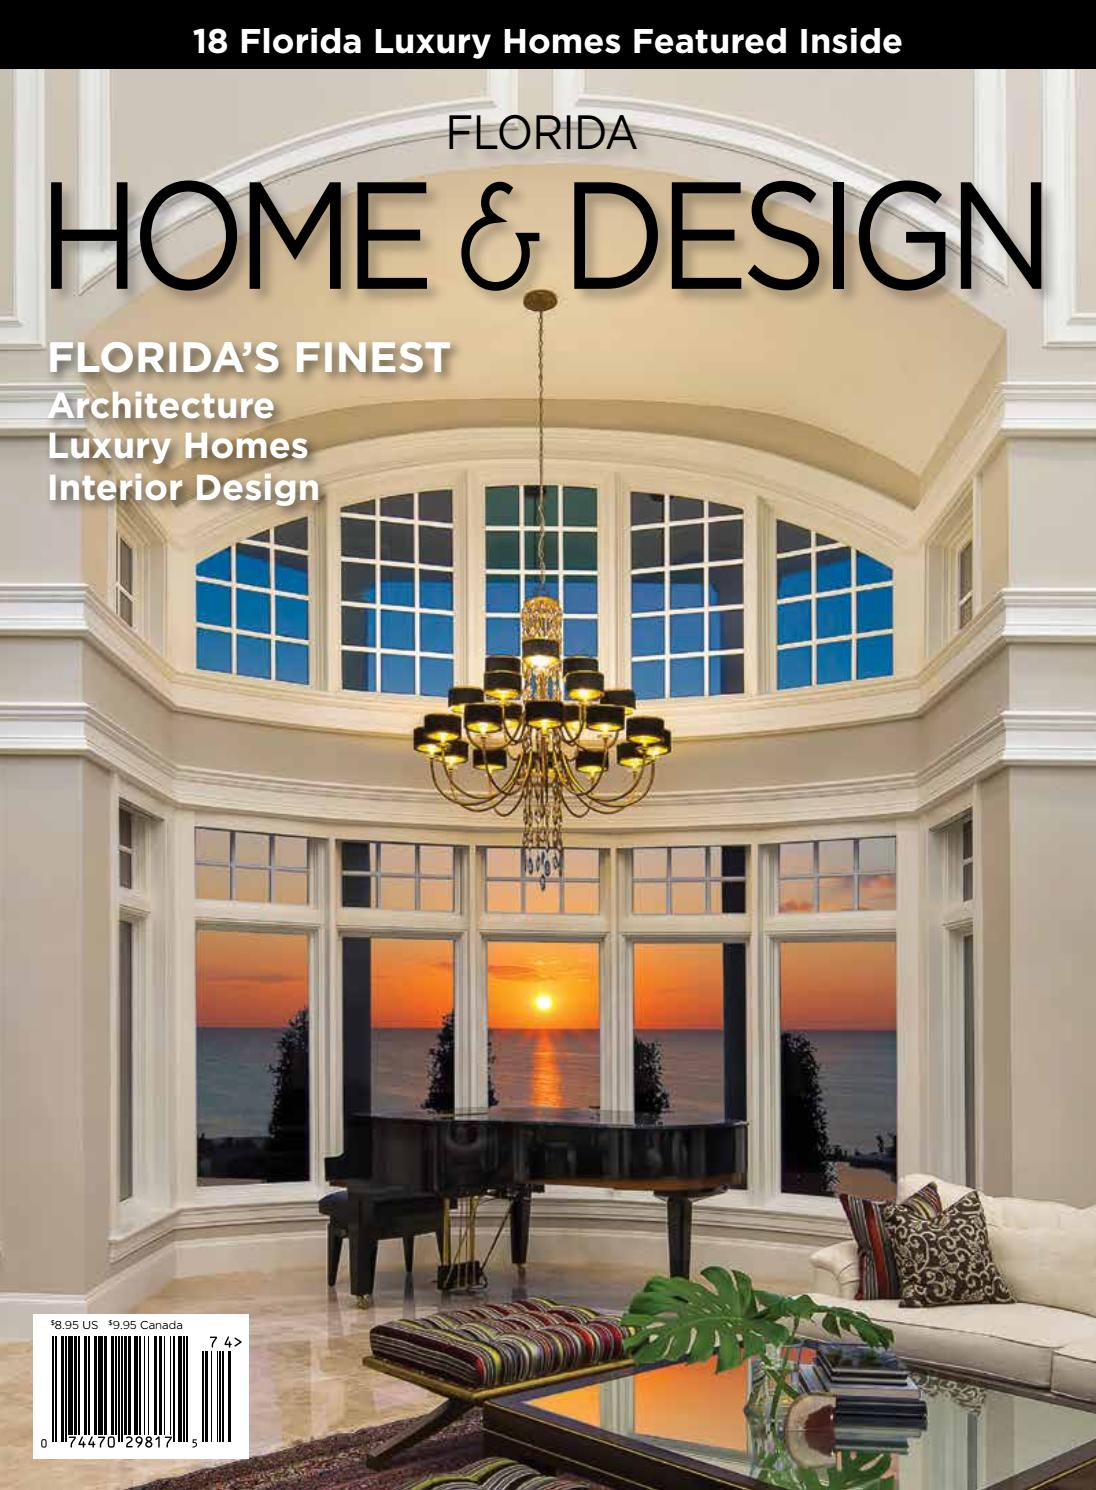 Fhd oct 2 by anthony spano issuu for Luxury homes interior photos